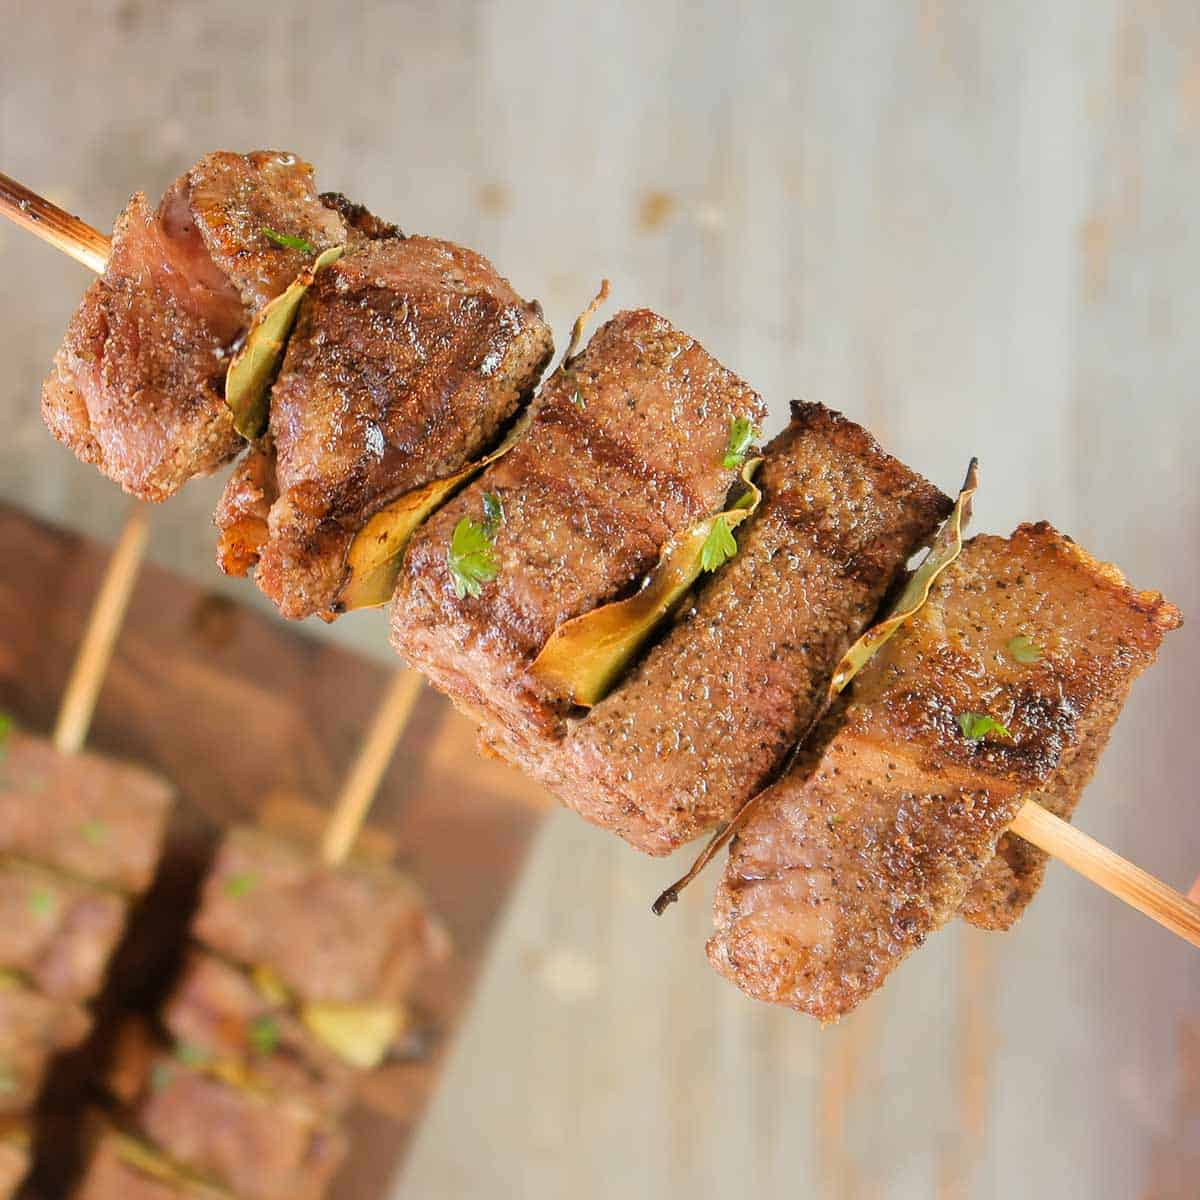 A beef kabob on a skewer